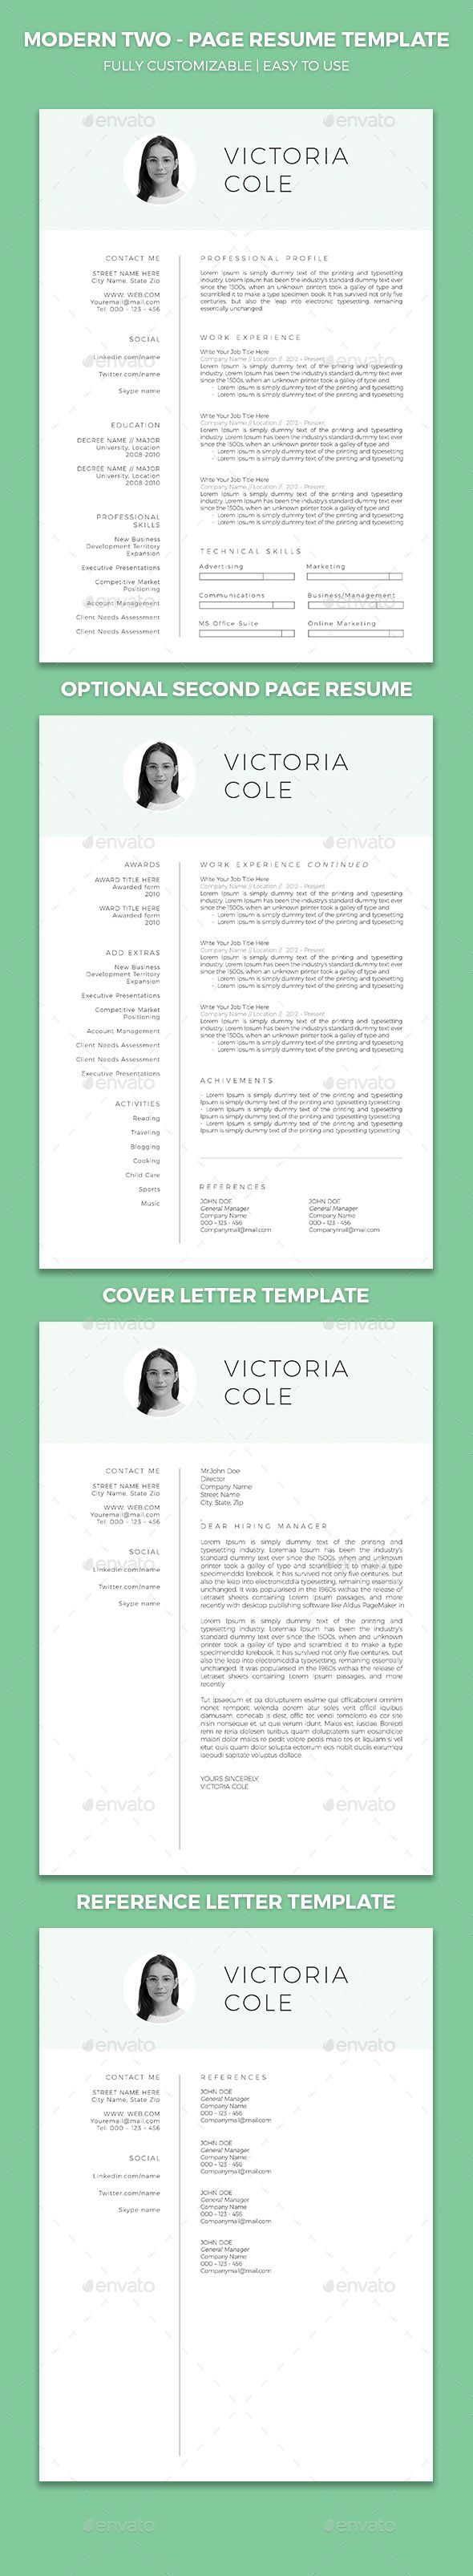 Resume Template With Cover Letter And Reference Letter  Reference